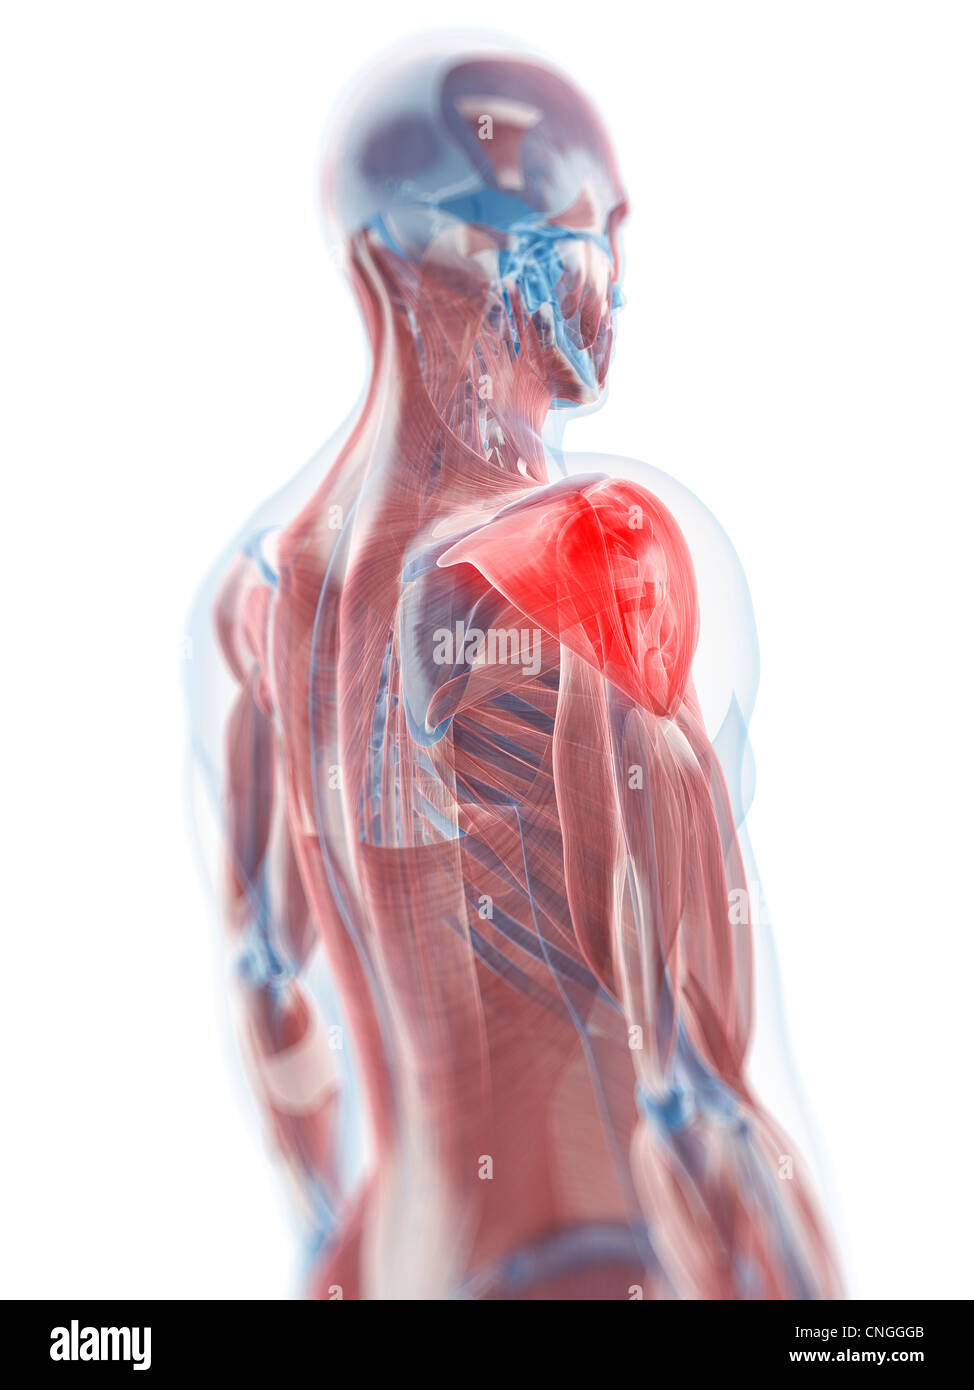 Deltoid muscle  artwork - Stock Image